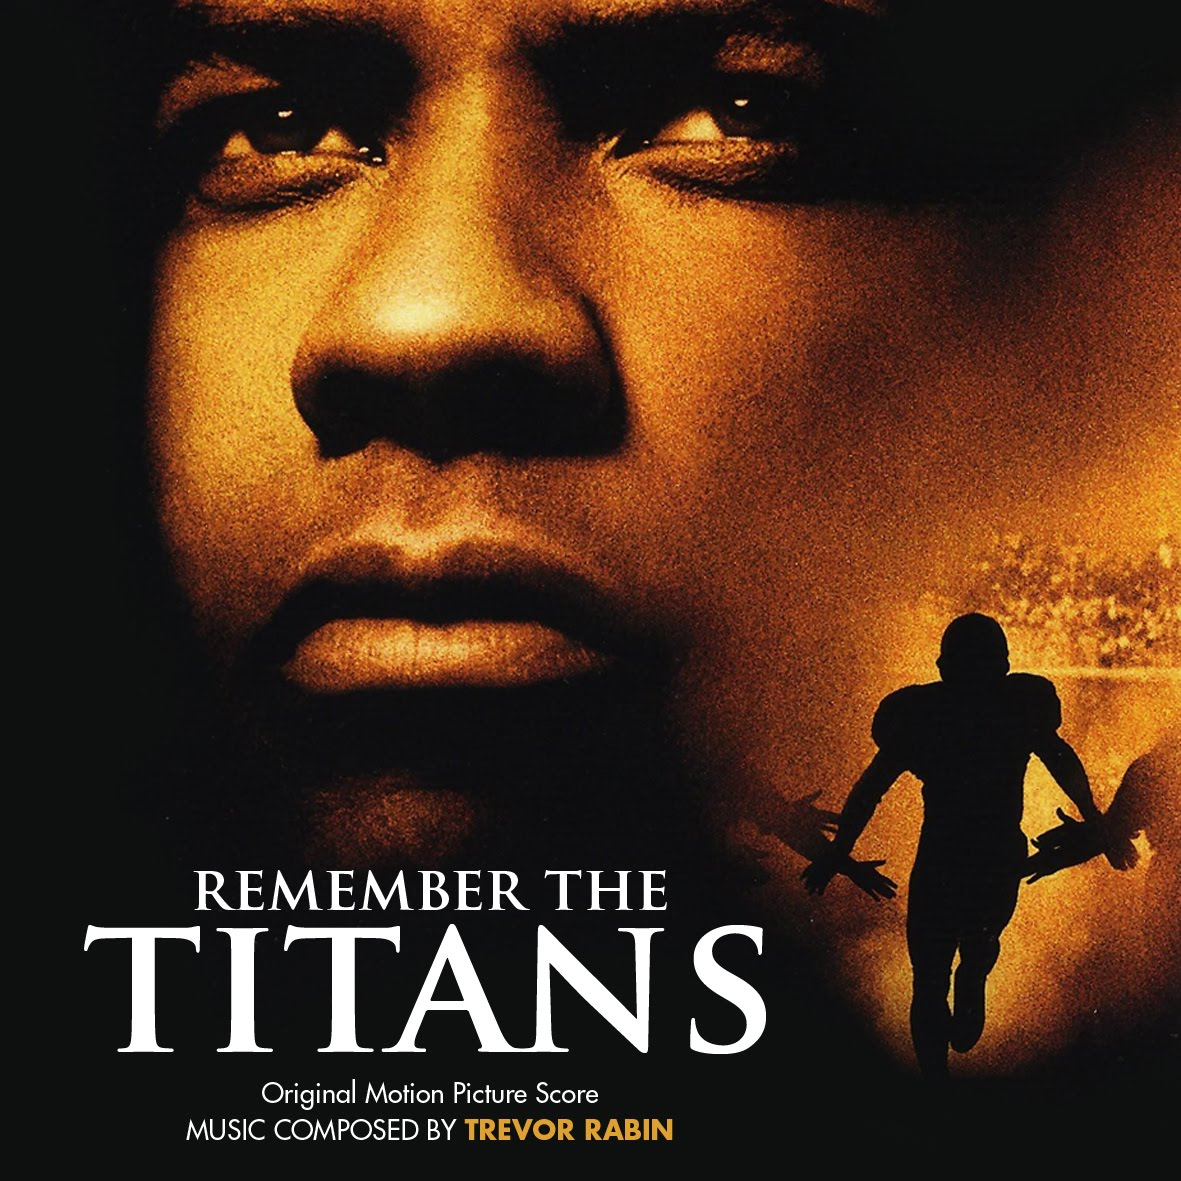 psychology remember the titans essay Remember the titans leadership essay submitted by: anonymous on december 6, 2014 category: psychology length: 310 words open document below is an essay on remember the titans leadership from anti essays, your source for research papers, essays, and term paper examples.